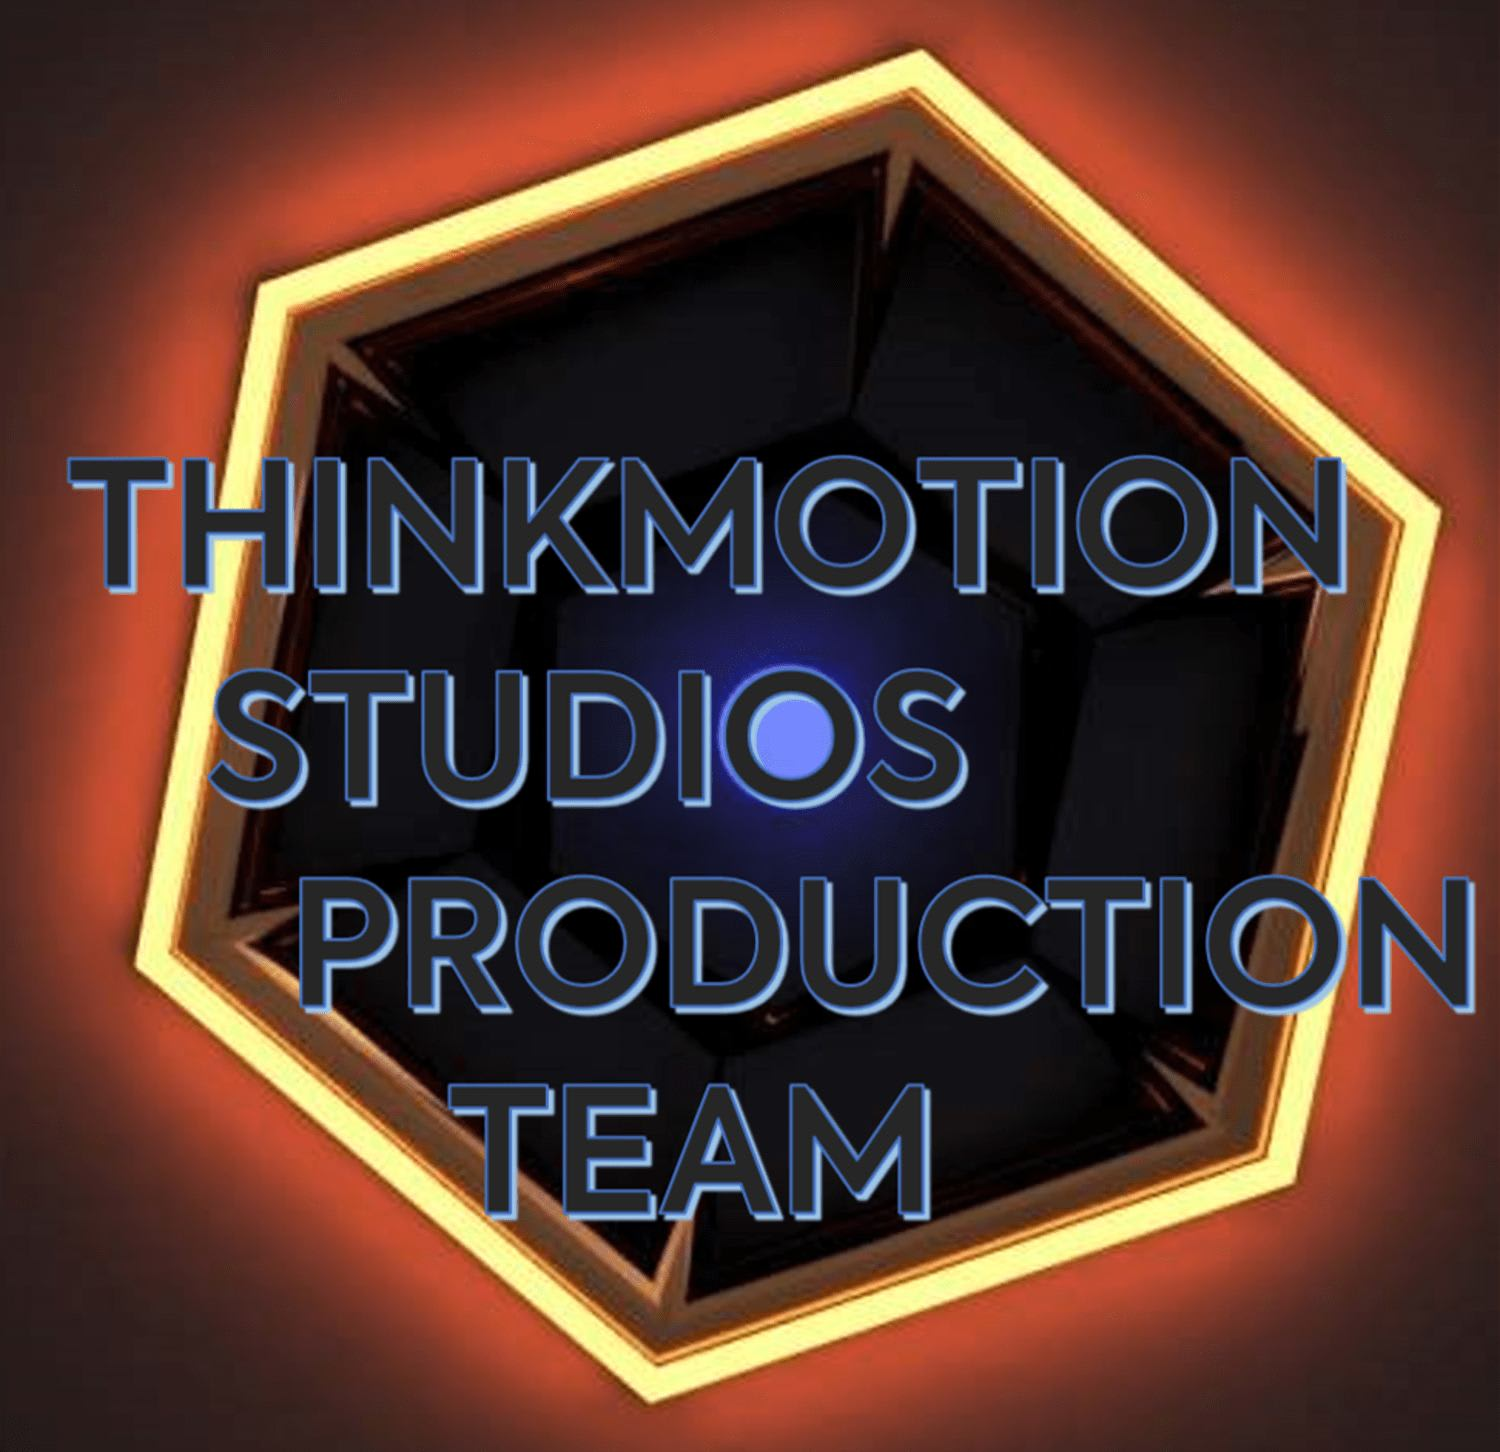 The Thinkmotion Team